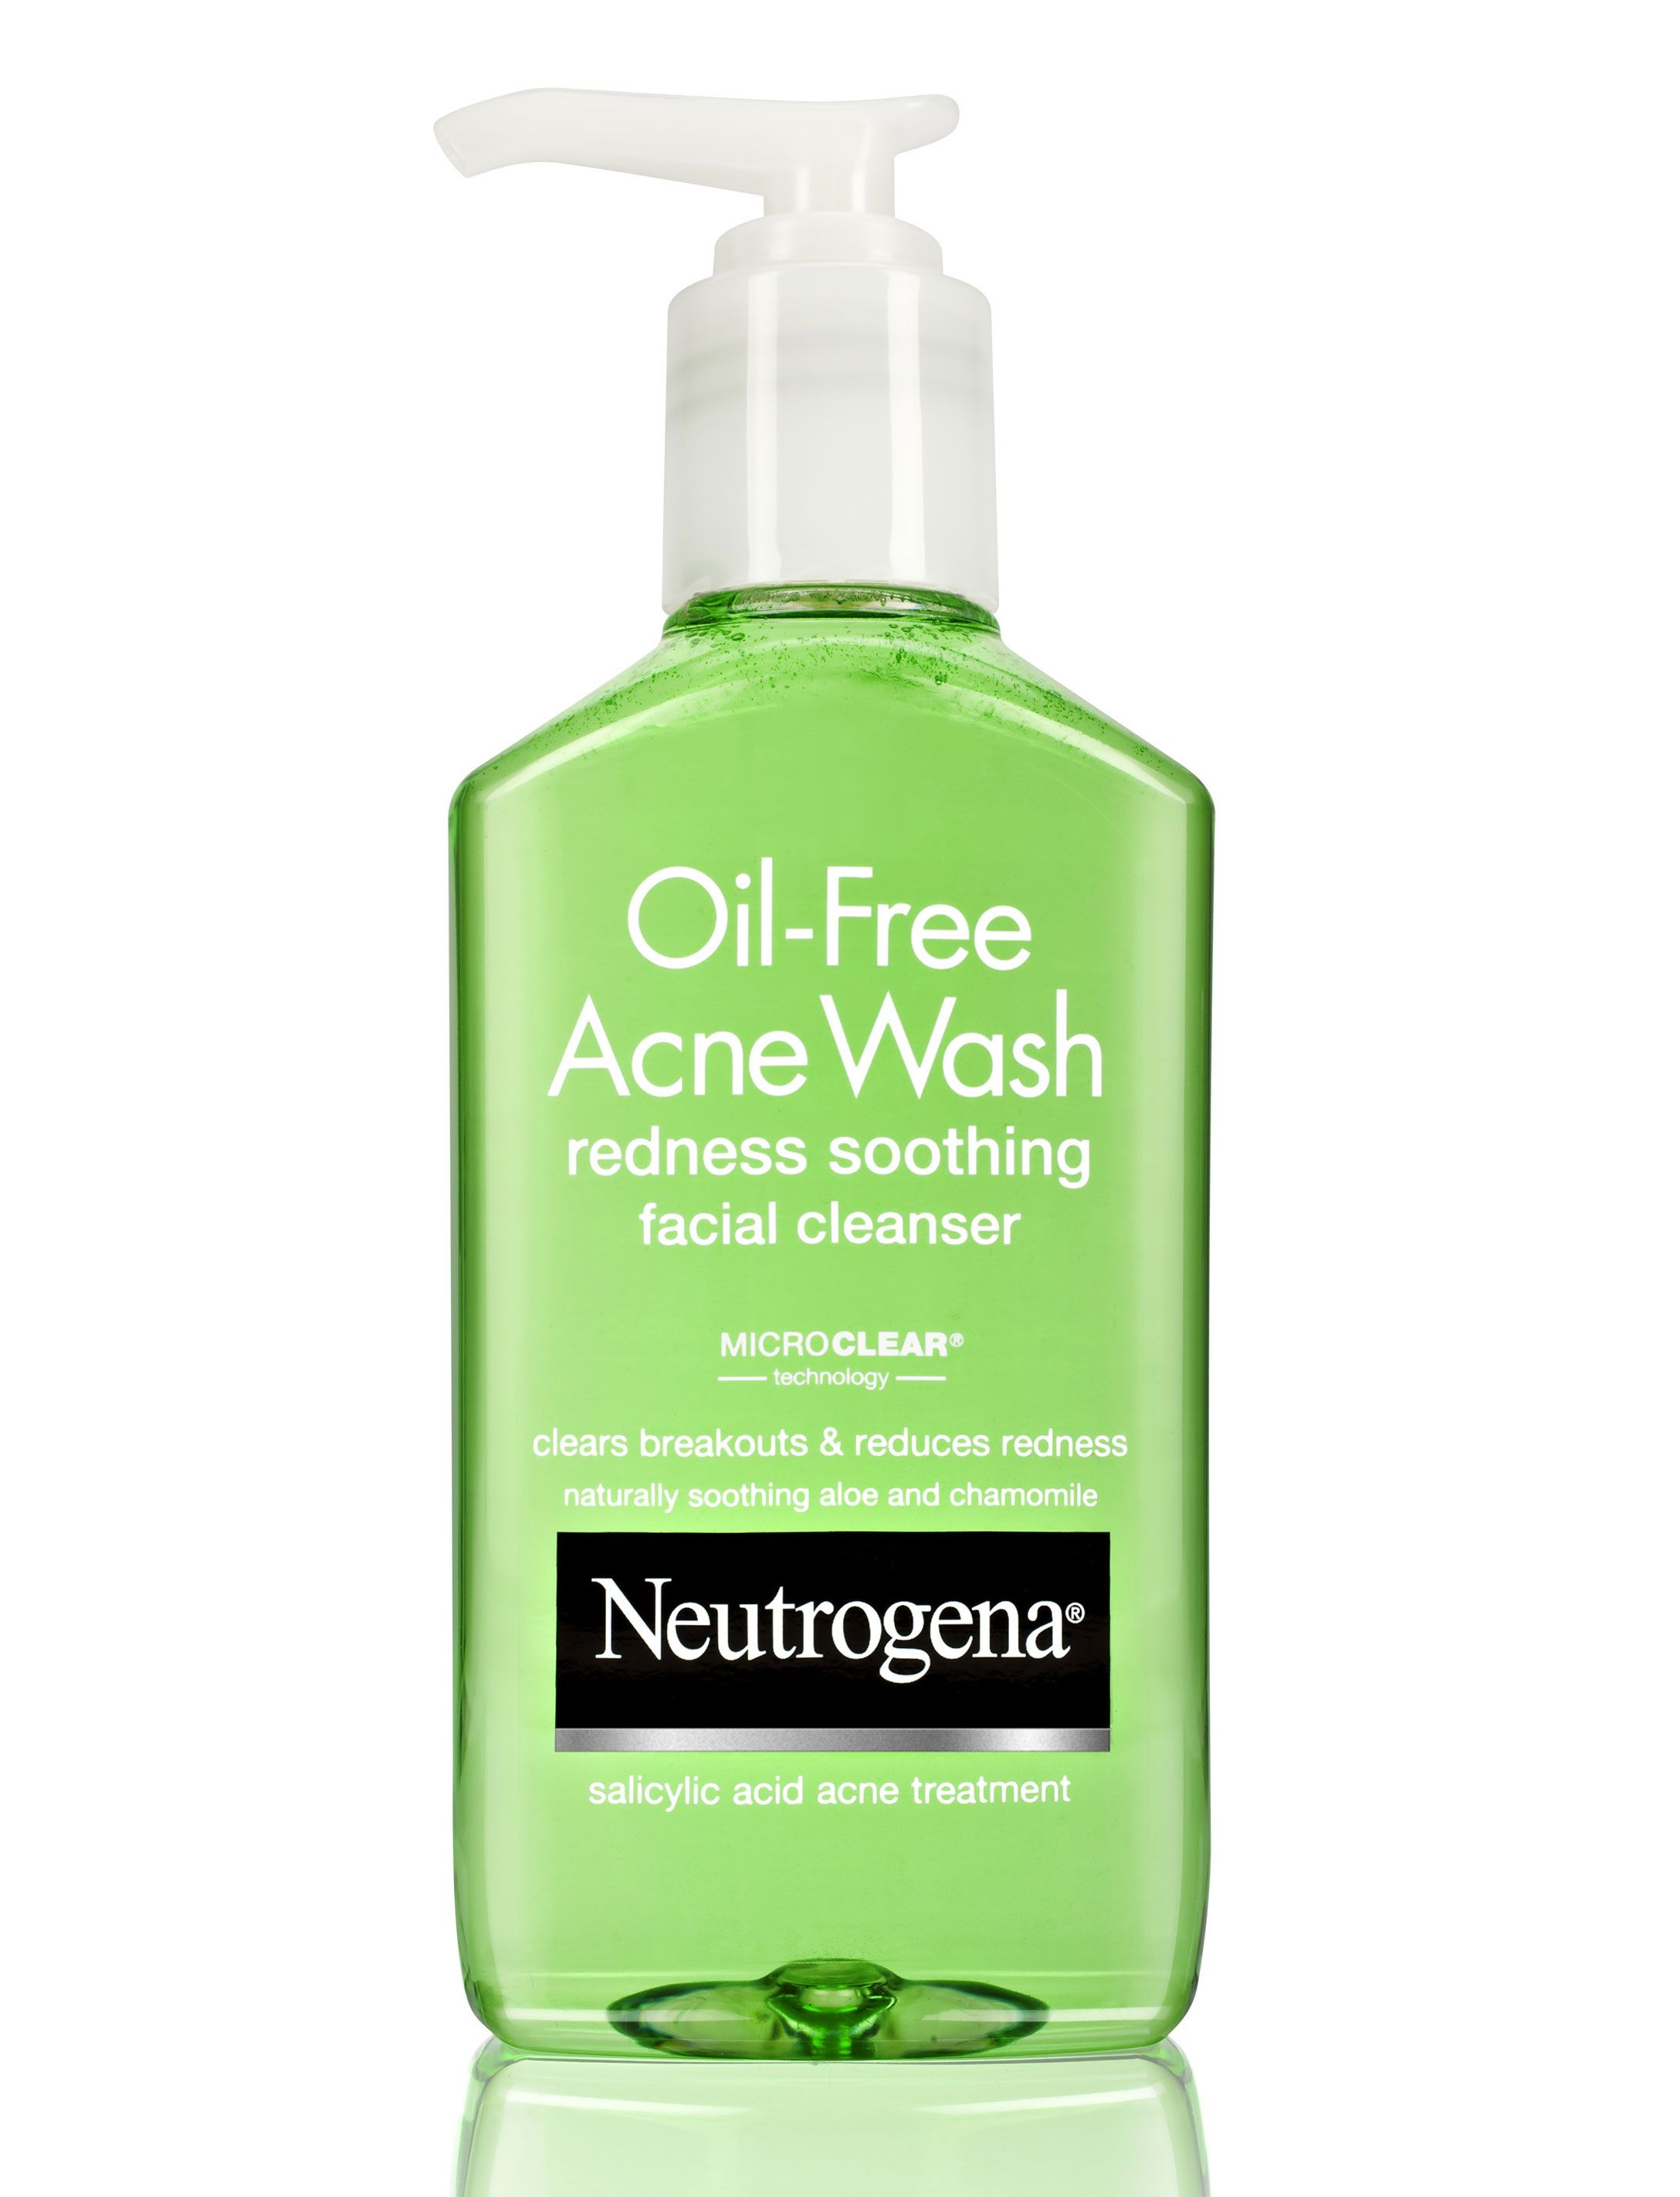 Slideshow The Best Products For Acne Prone Skin Acne Wash Oil Free Acne Wash Acne Face Wash